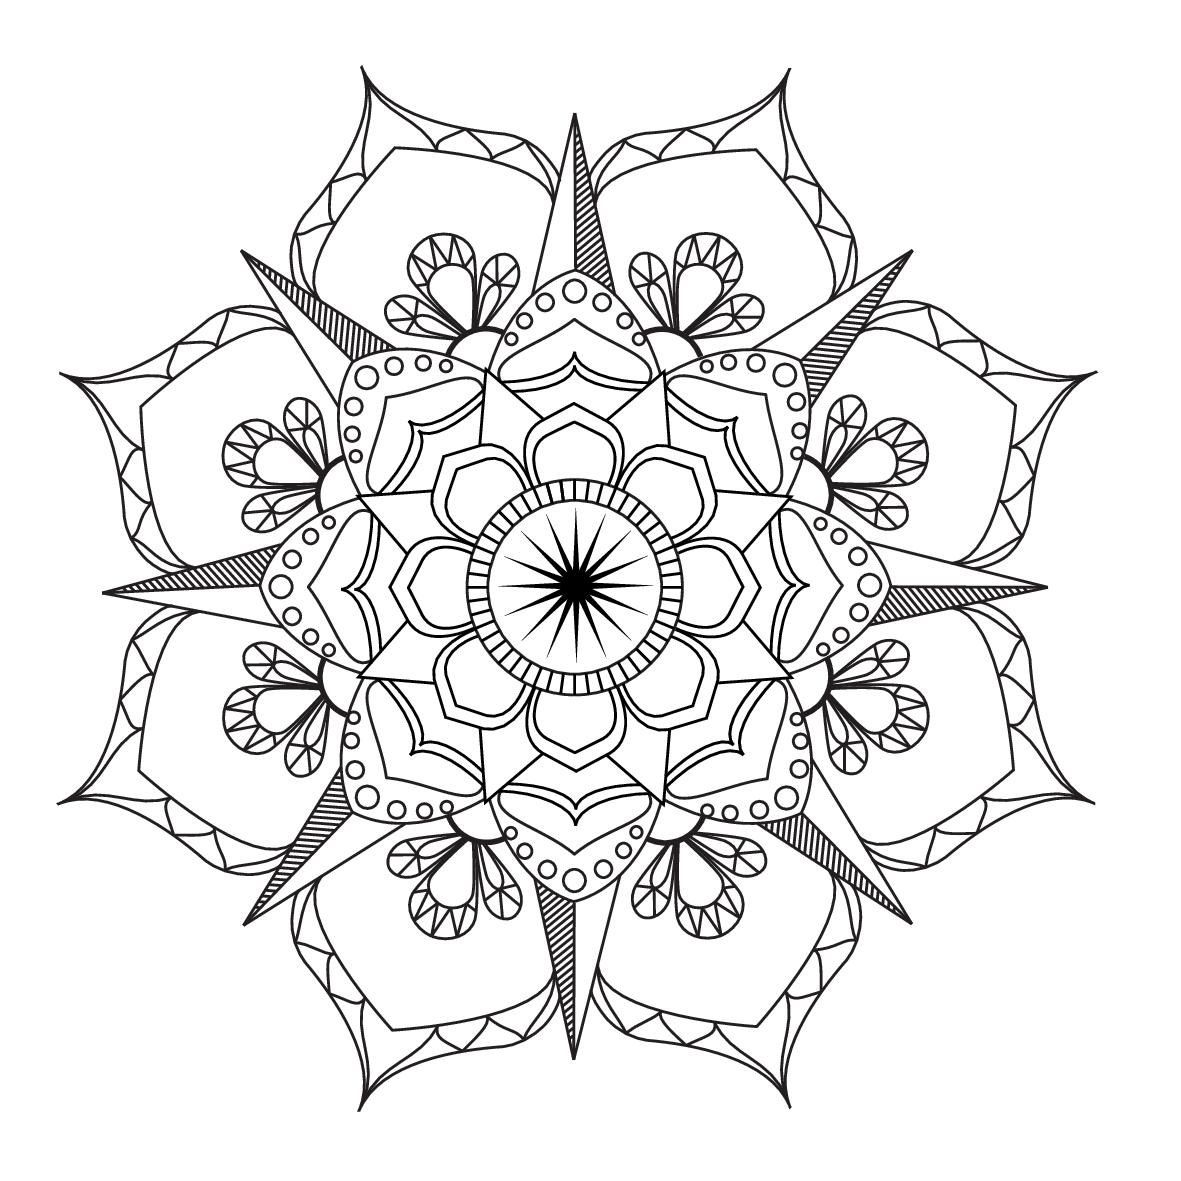 Flower Mandala Coloring Page Adult Coloring Art Therapy Pdf Including Flower Coloring Pages Mandala Coloring Pages Mandala Coloring